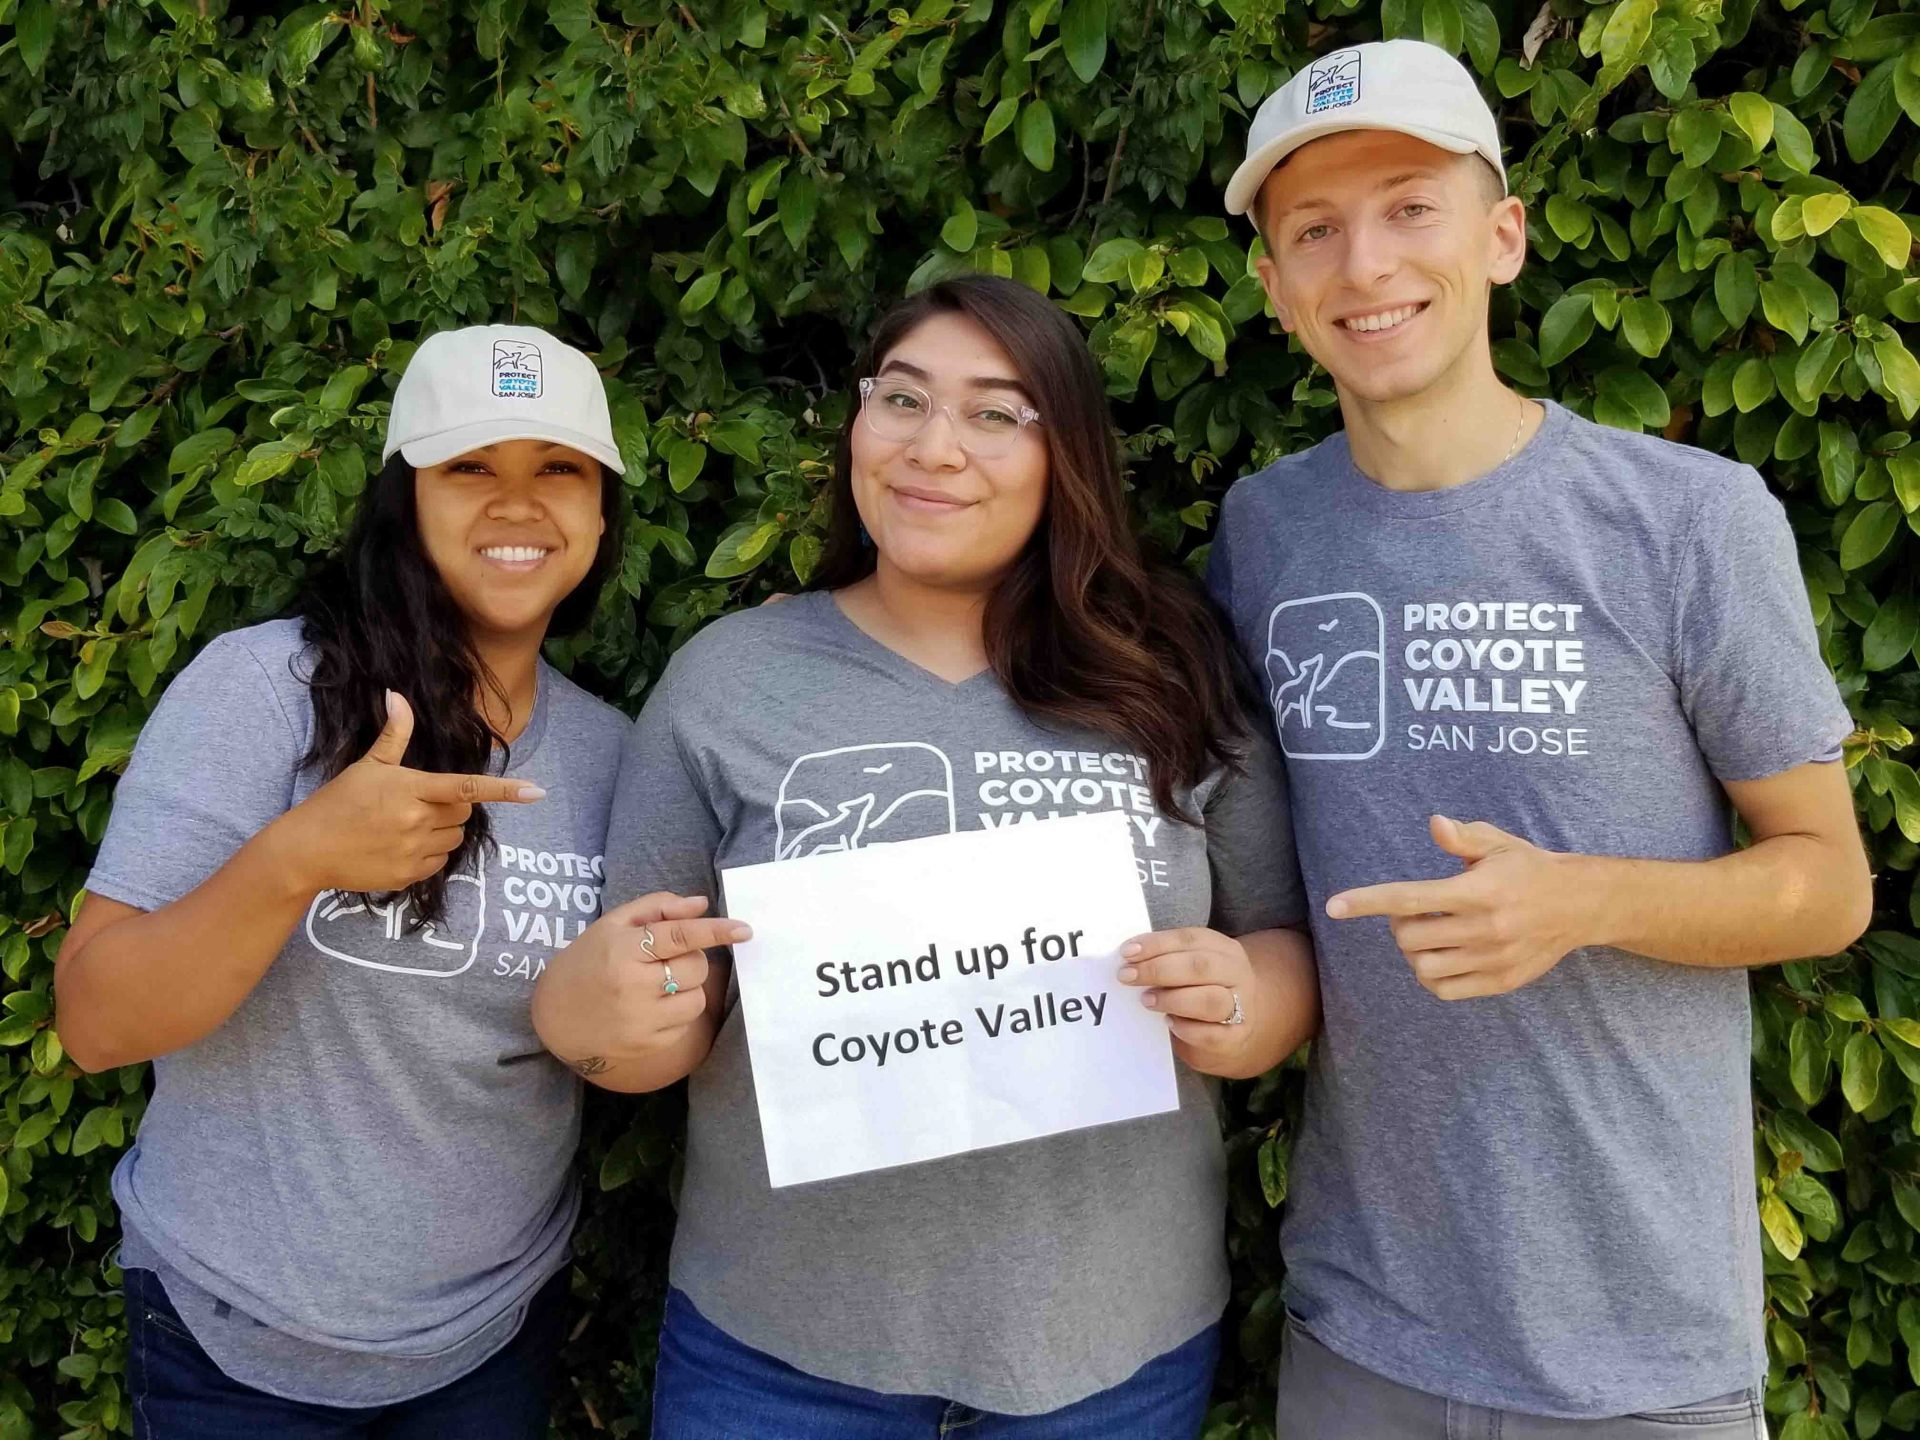 Stand up for Coyote Valley